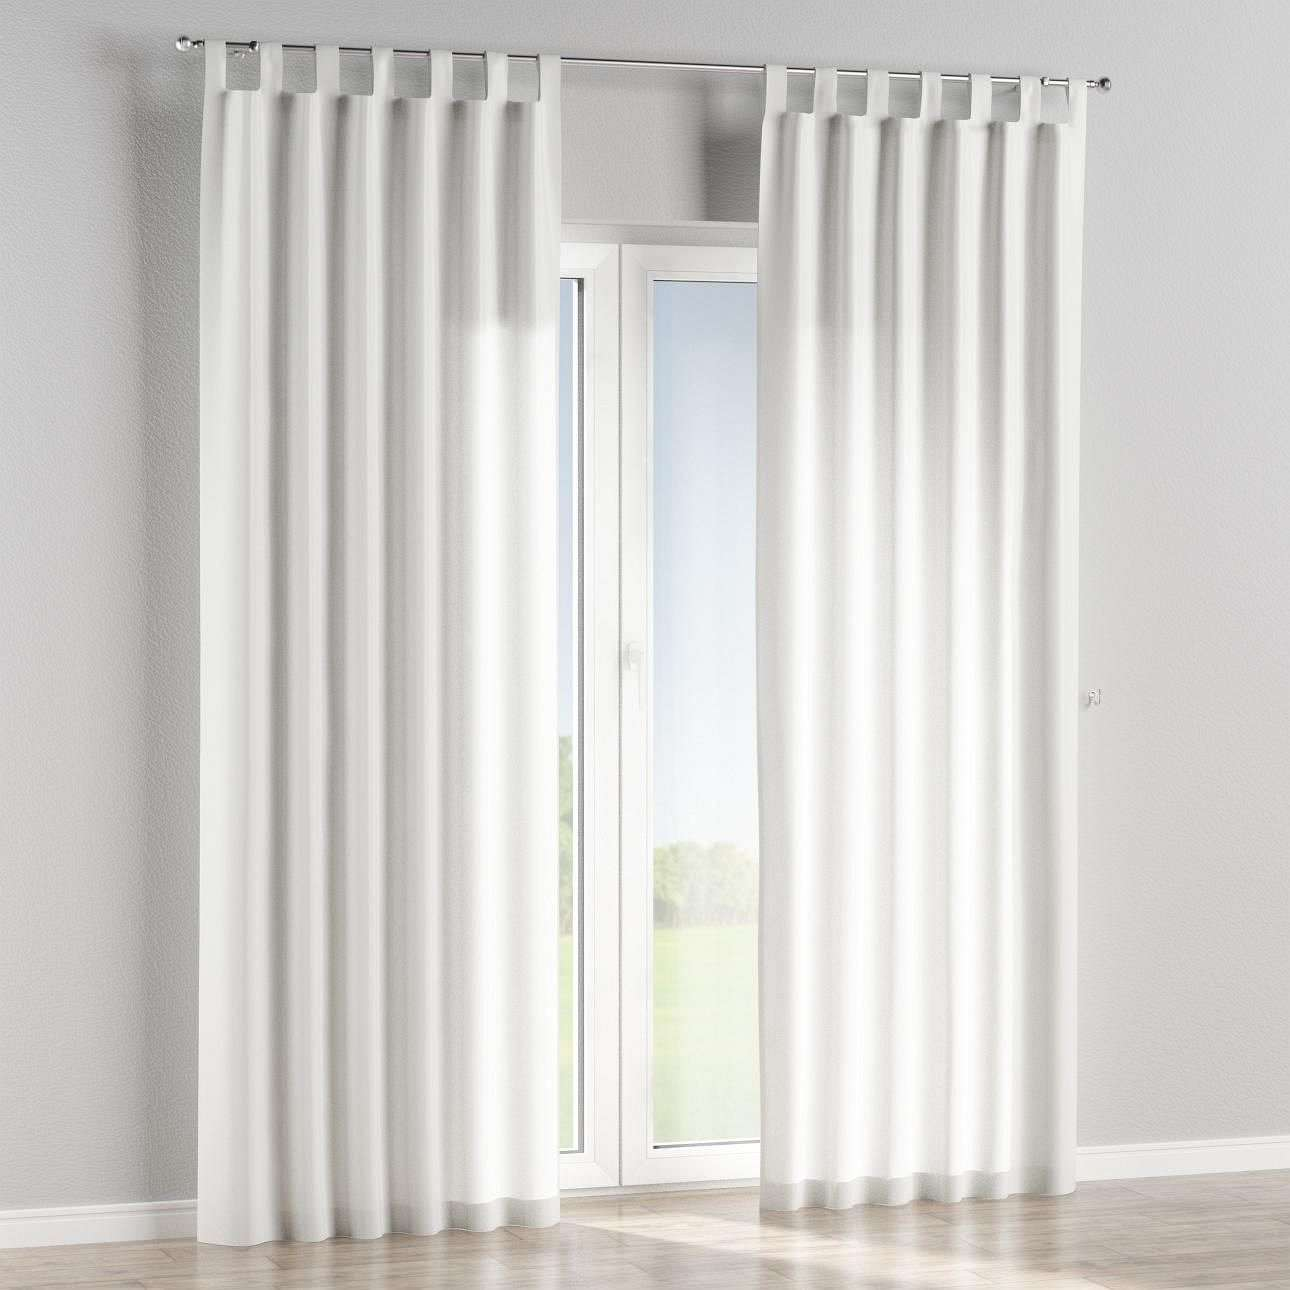 Tab top curtains in collection Nordic, fabric: 630-21